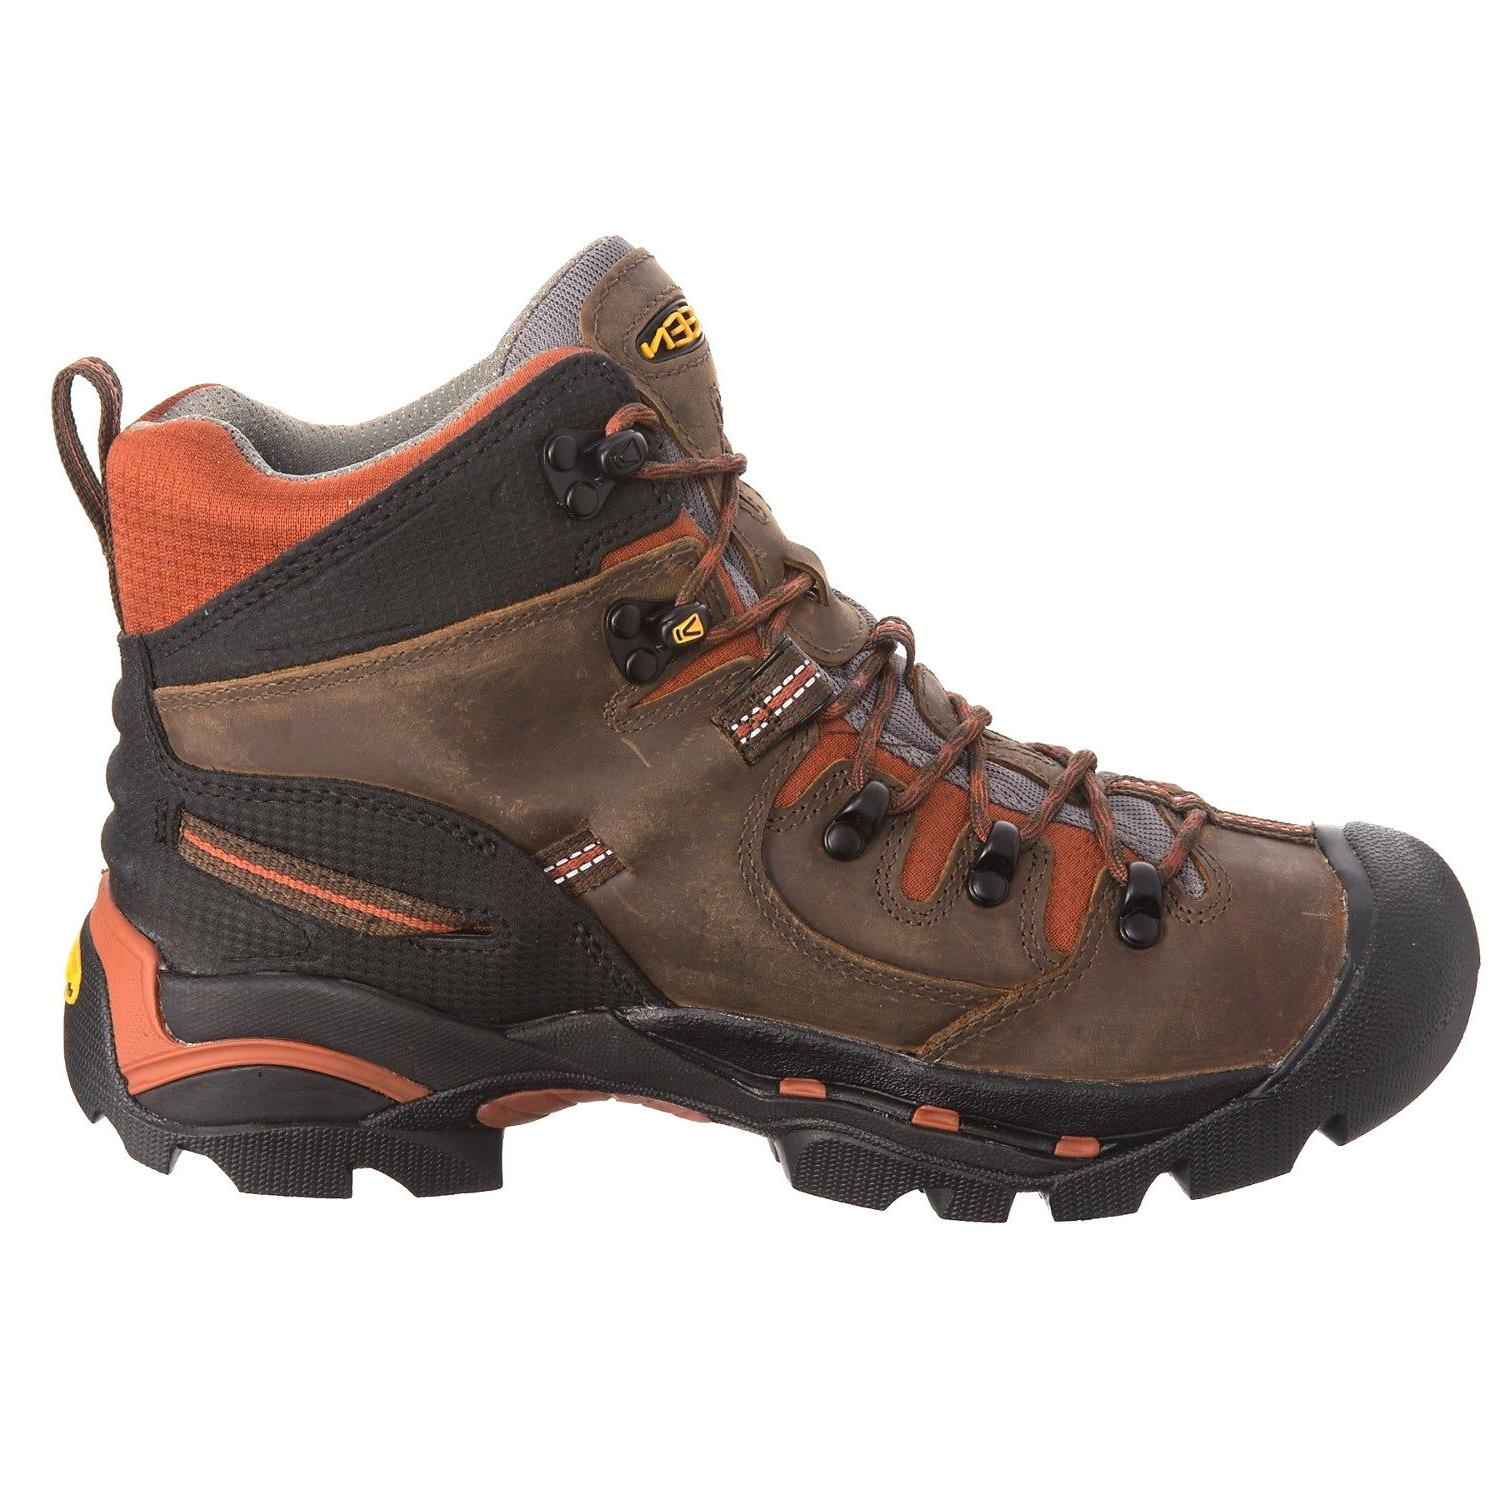 KEEN PITTSBURGH Mid Soft Work Hiker